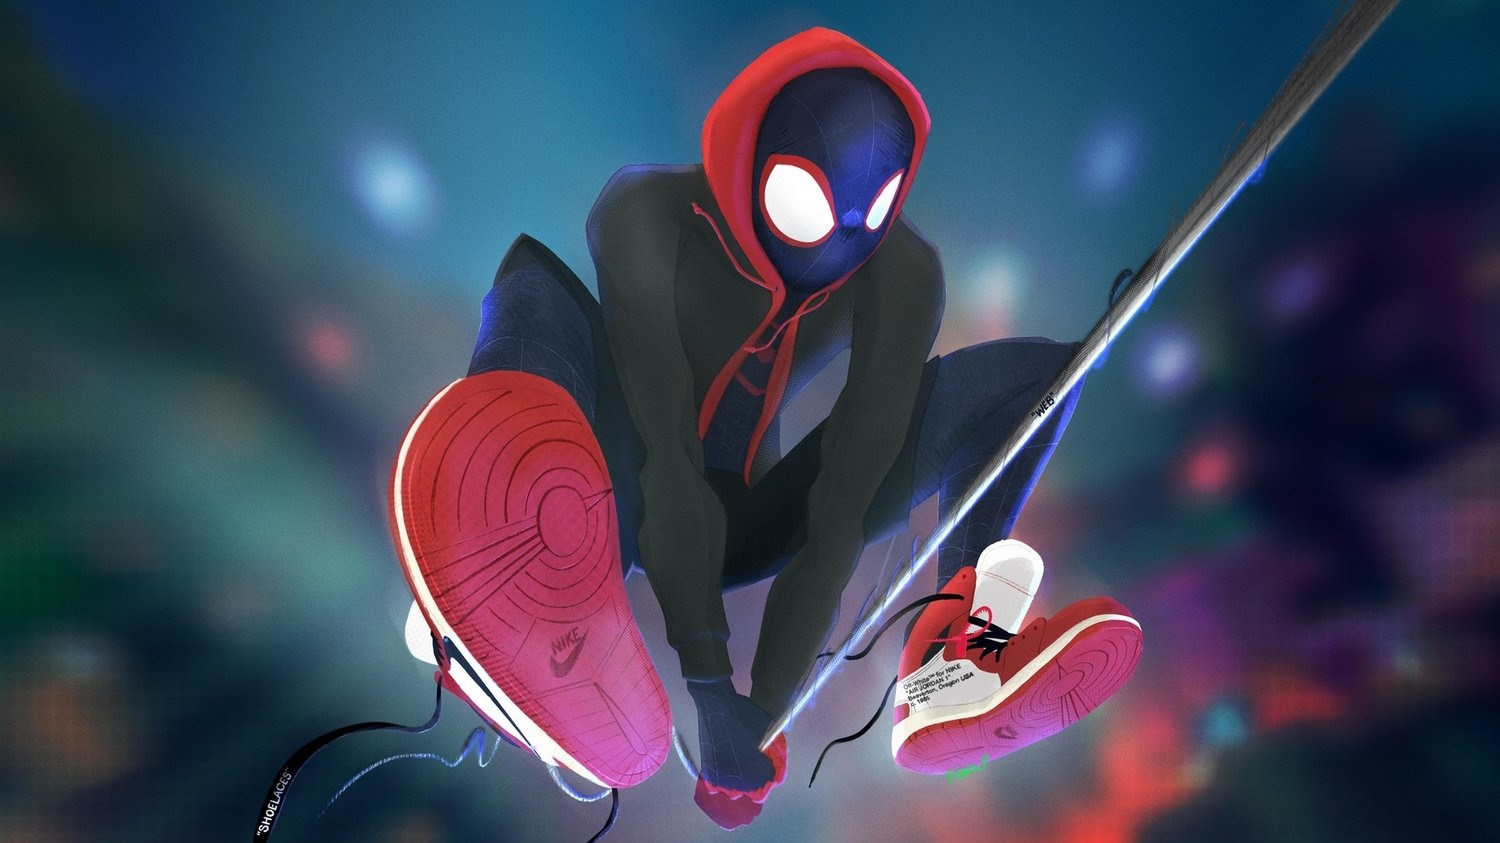 #20) Spider-Man: Into the Spider-Verse(NEW) - (2018 - dir. Bob Persichetti, Peter Ramsey, and Rodney Rothman)